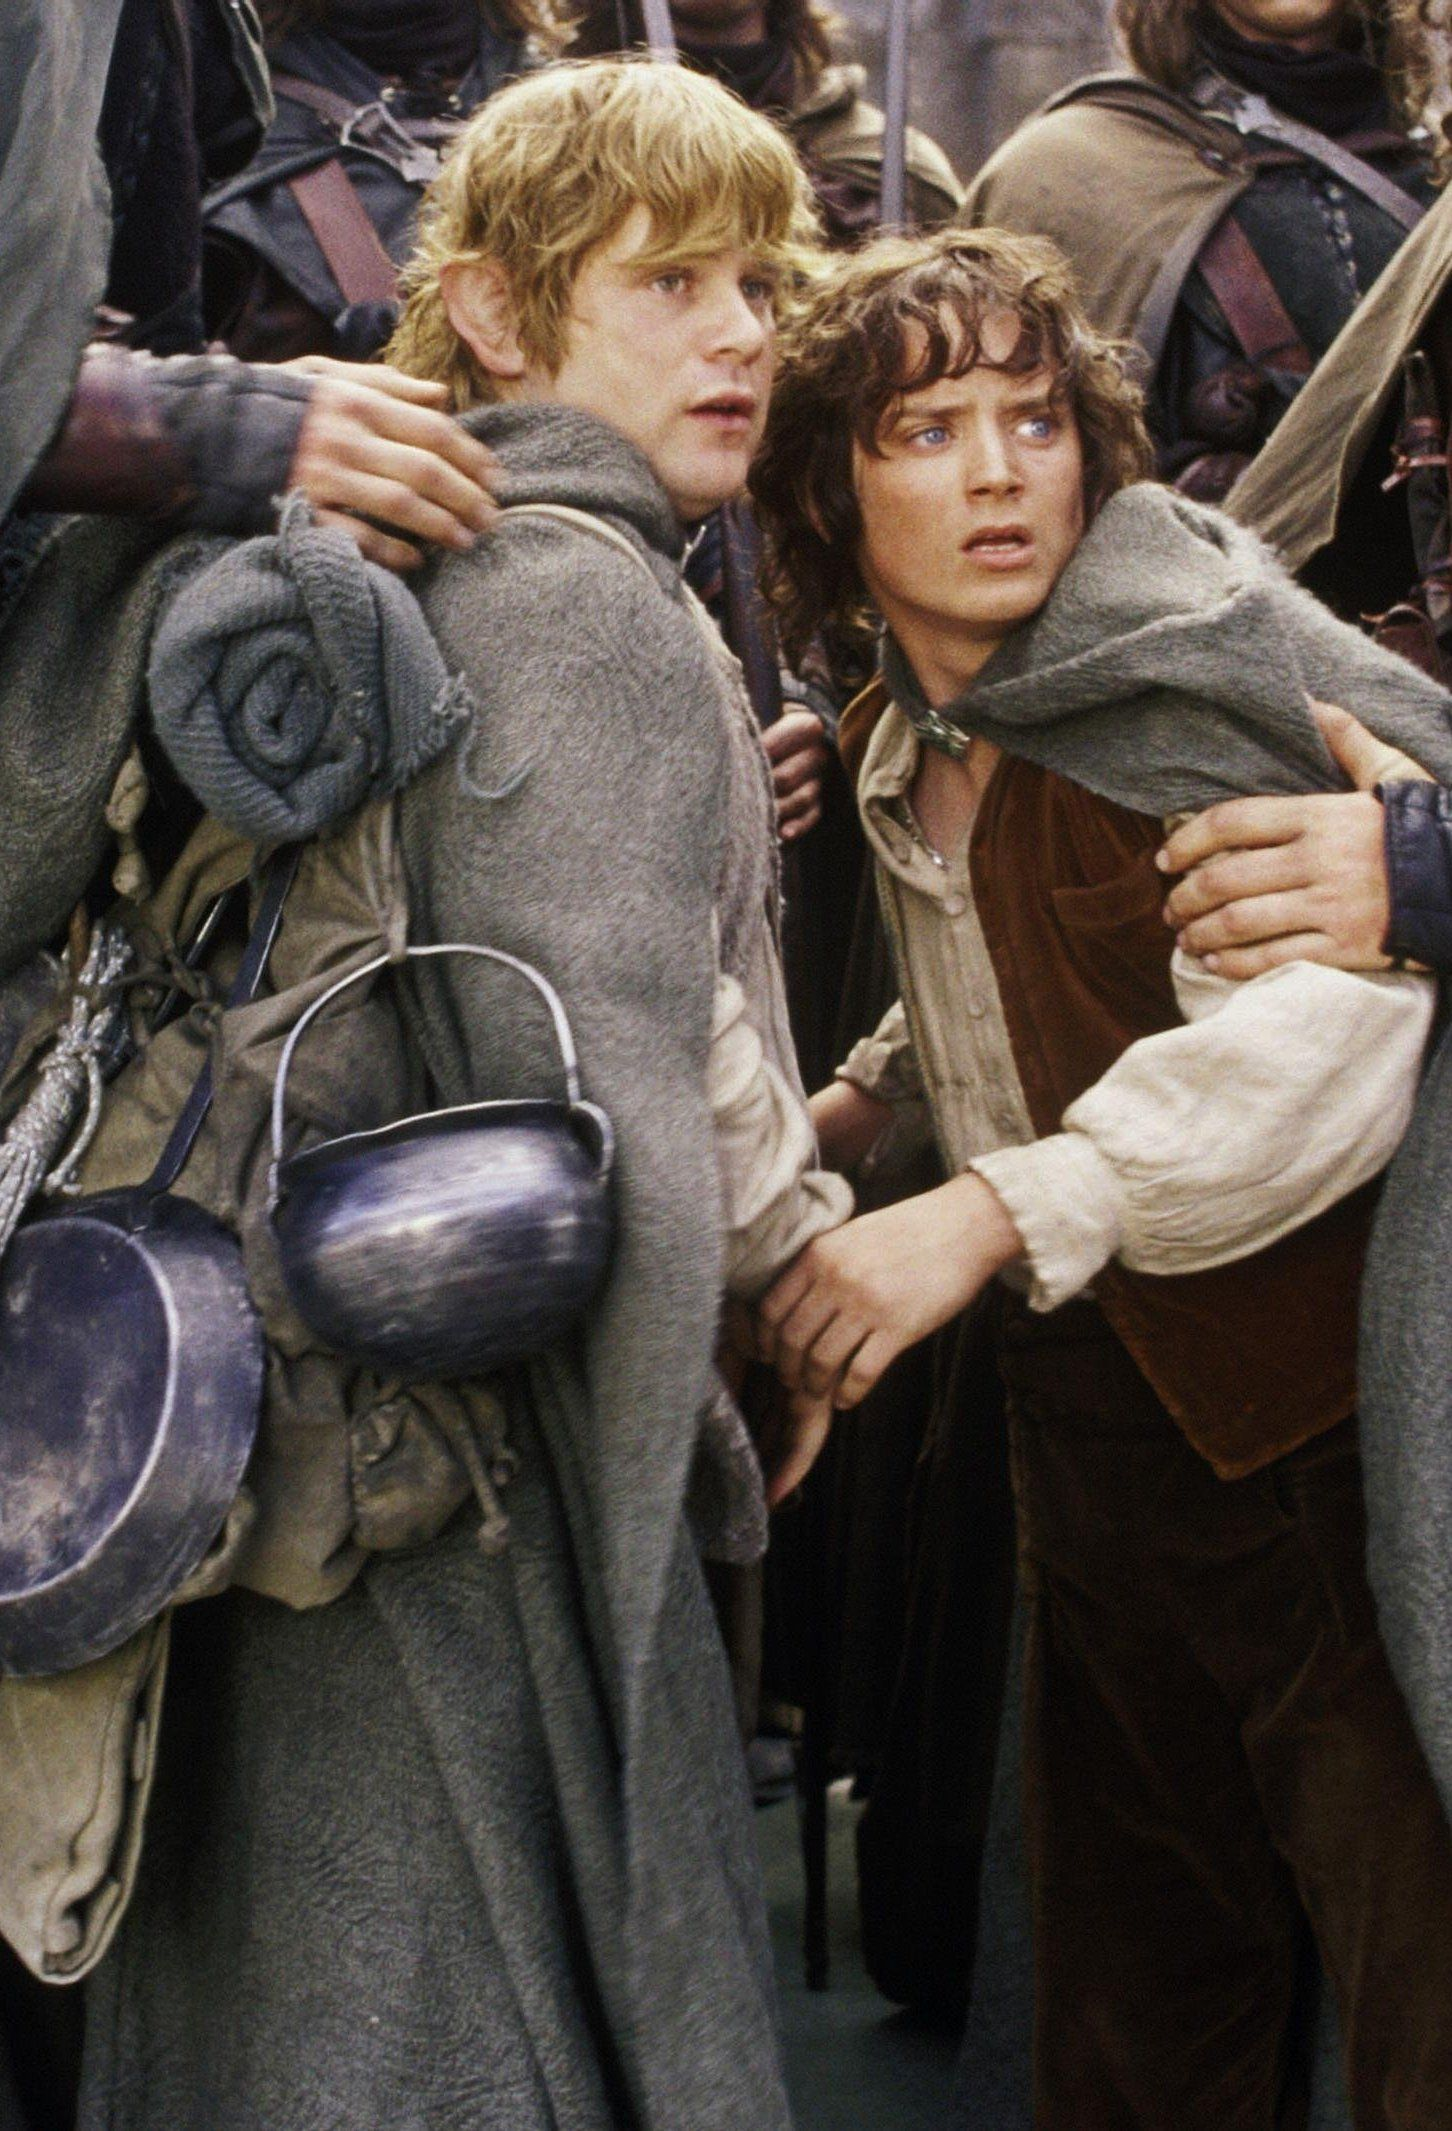 Sam and Frodo | The Lord of the Rings: The Two Towers